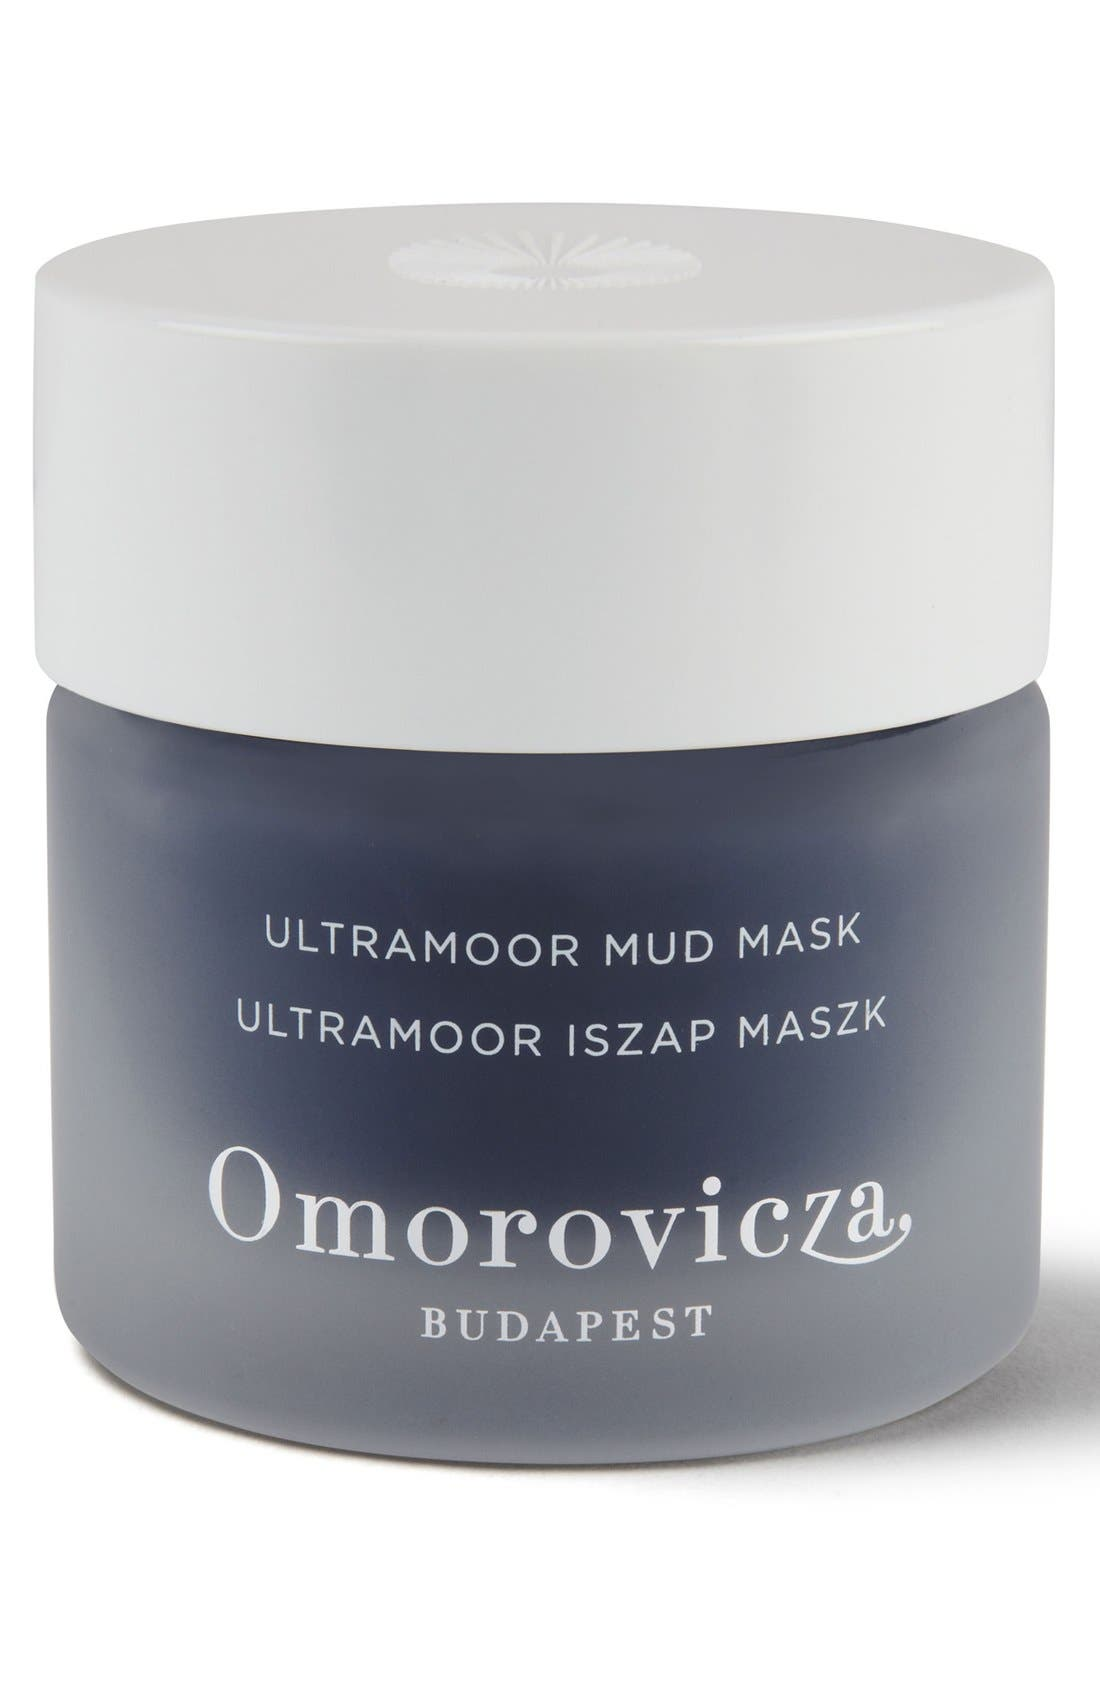 Ultramoor Mud Mask,                             Main thumbnail 1, color,                             NO COLOR